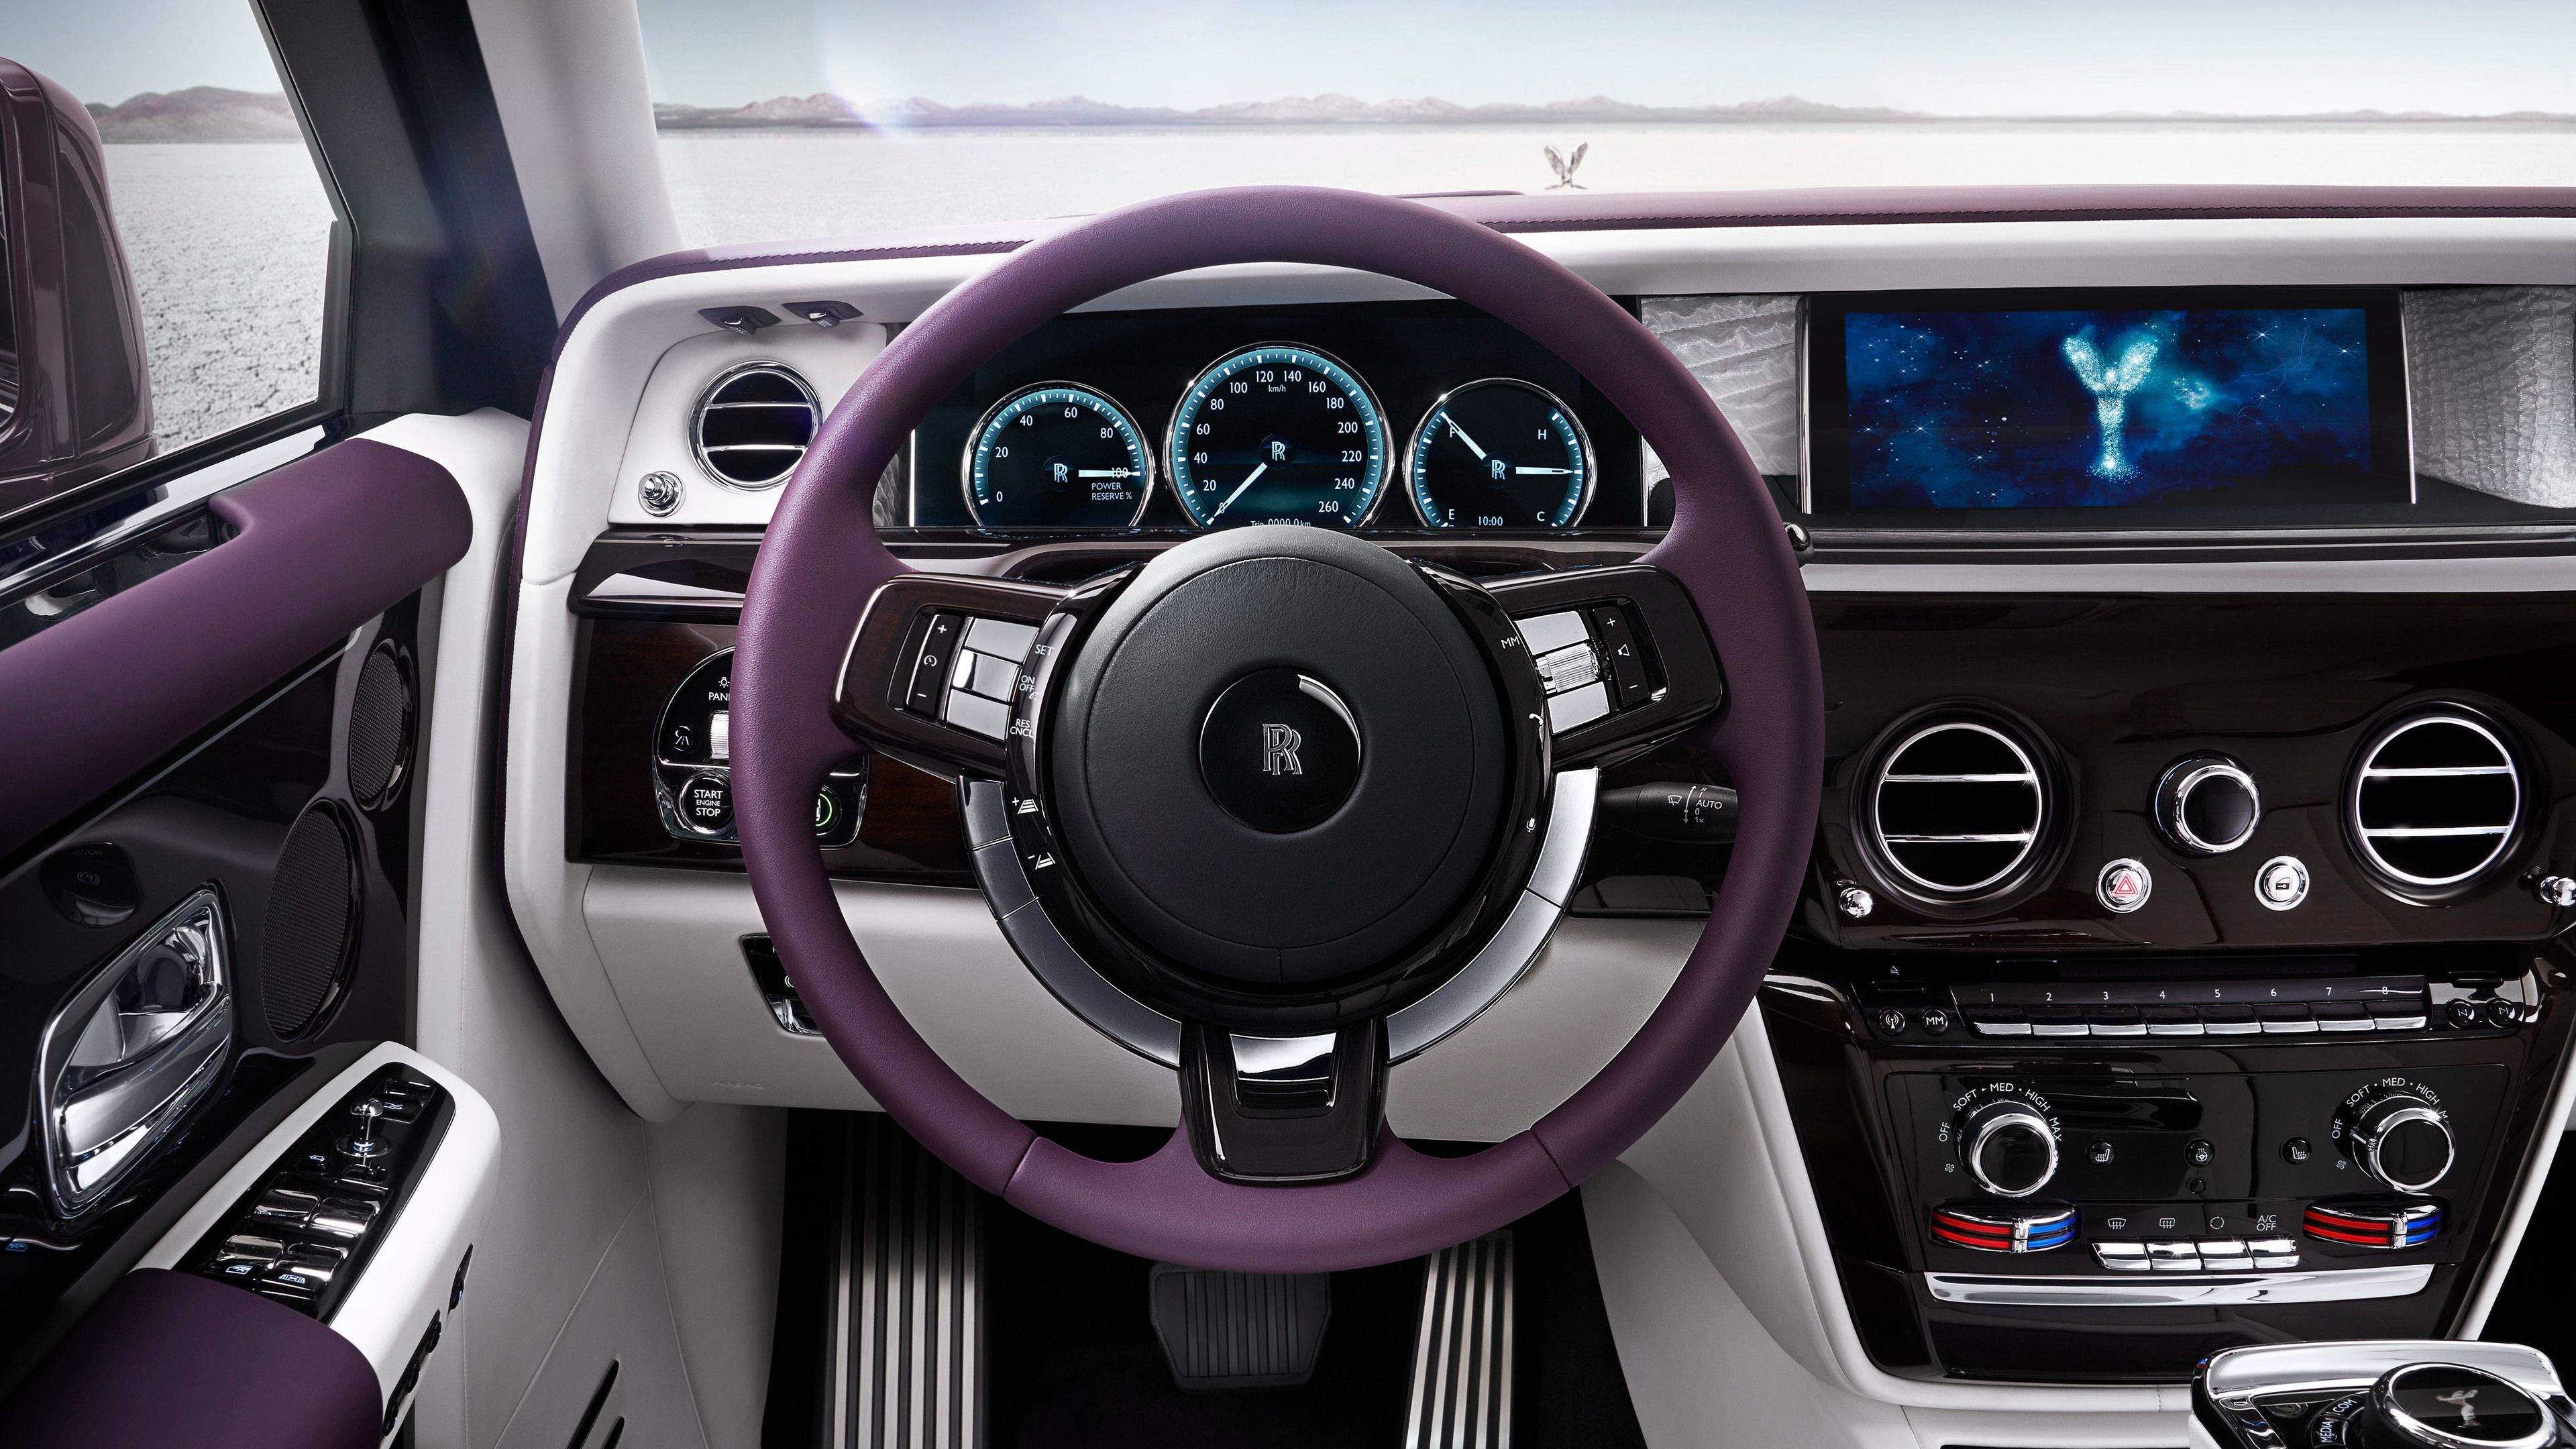 2017 Rolls Royce Phantom EWB Interior rolls royce wallpapers, rolls royce phanto…